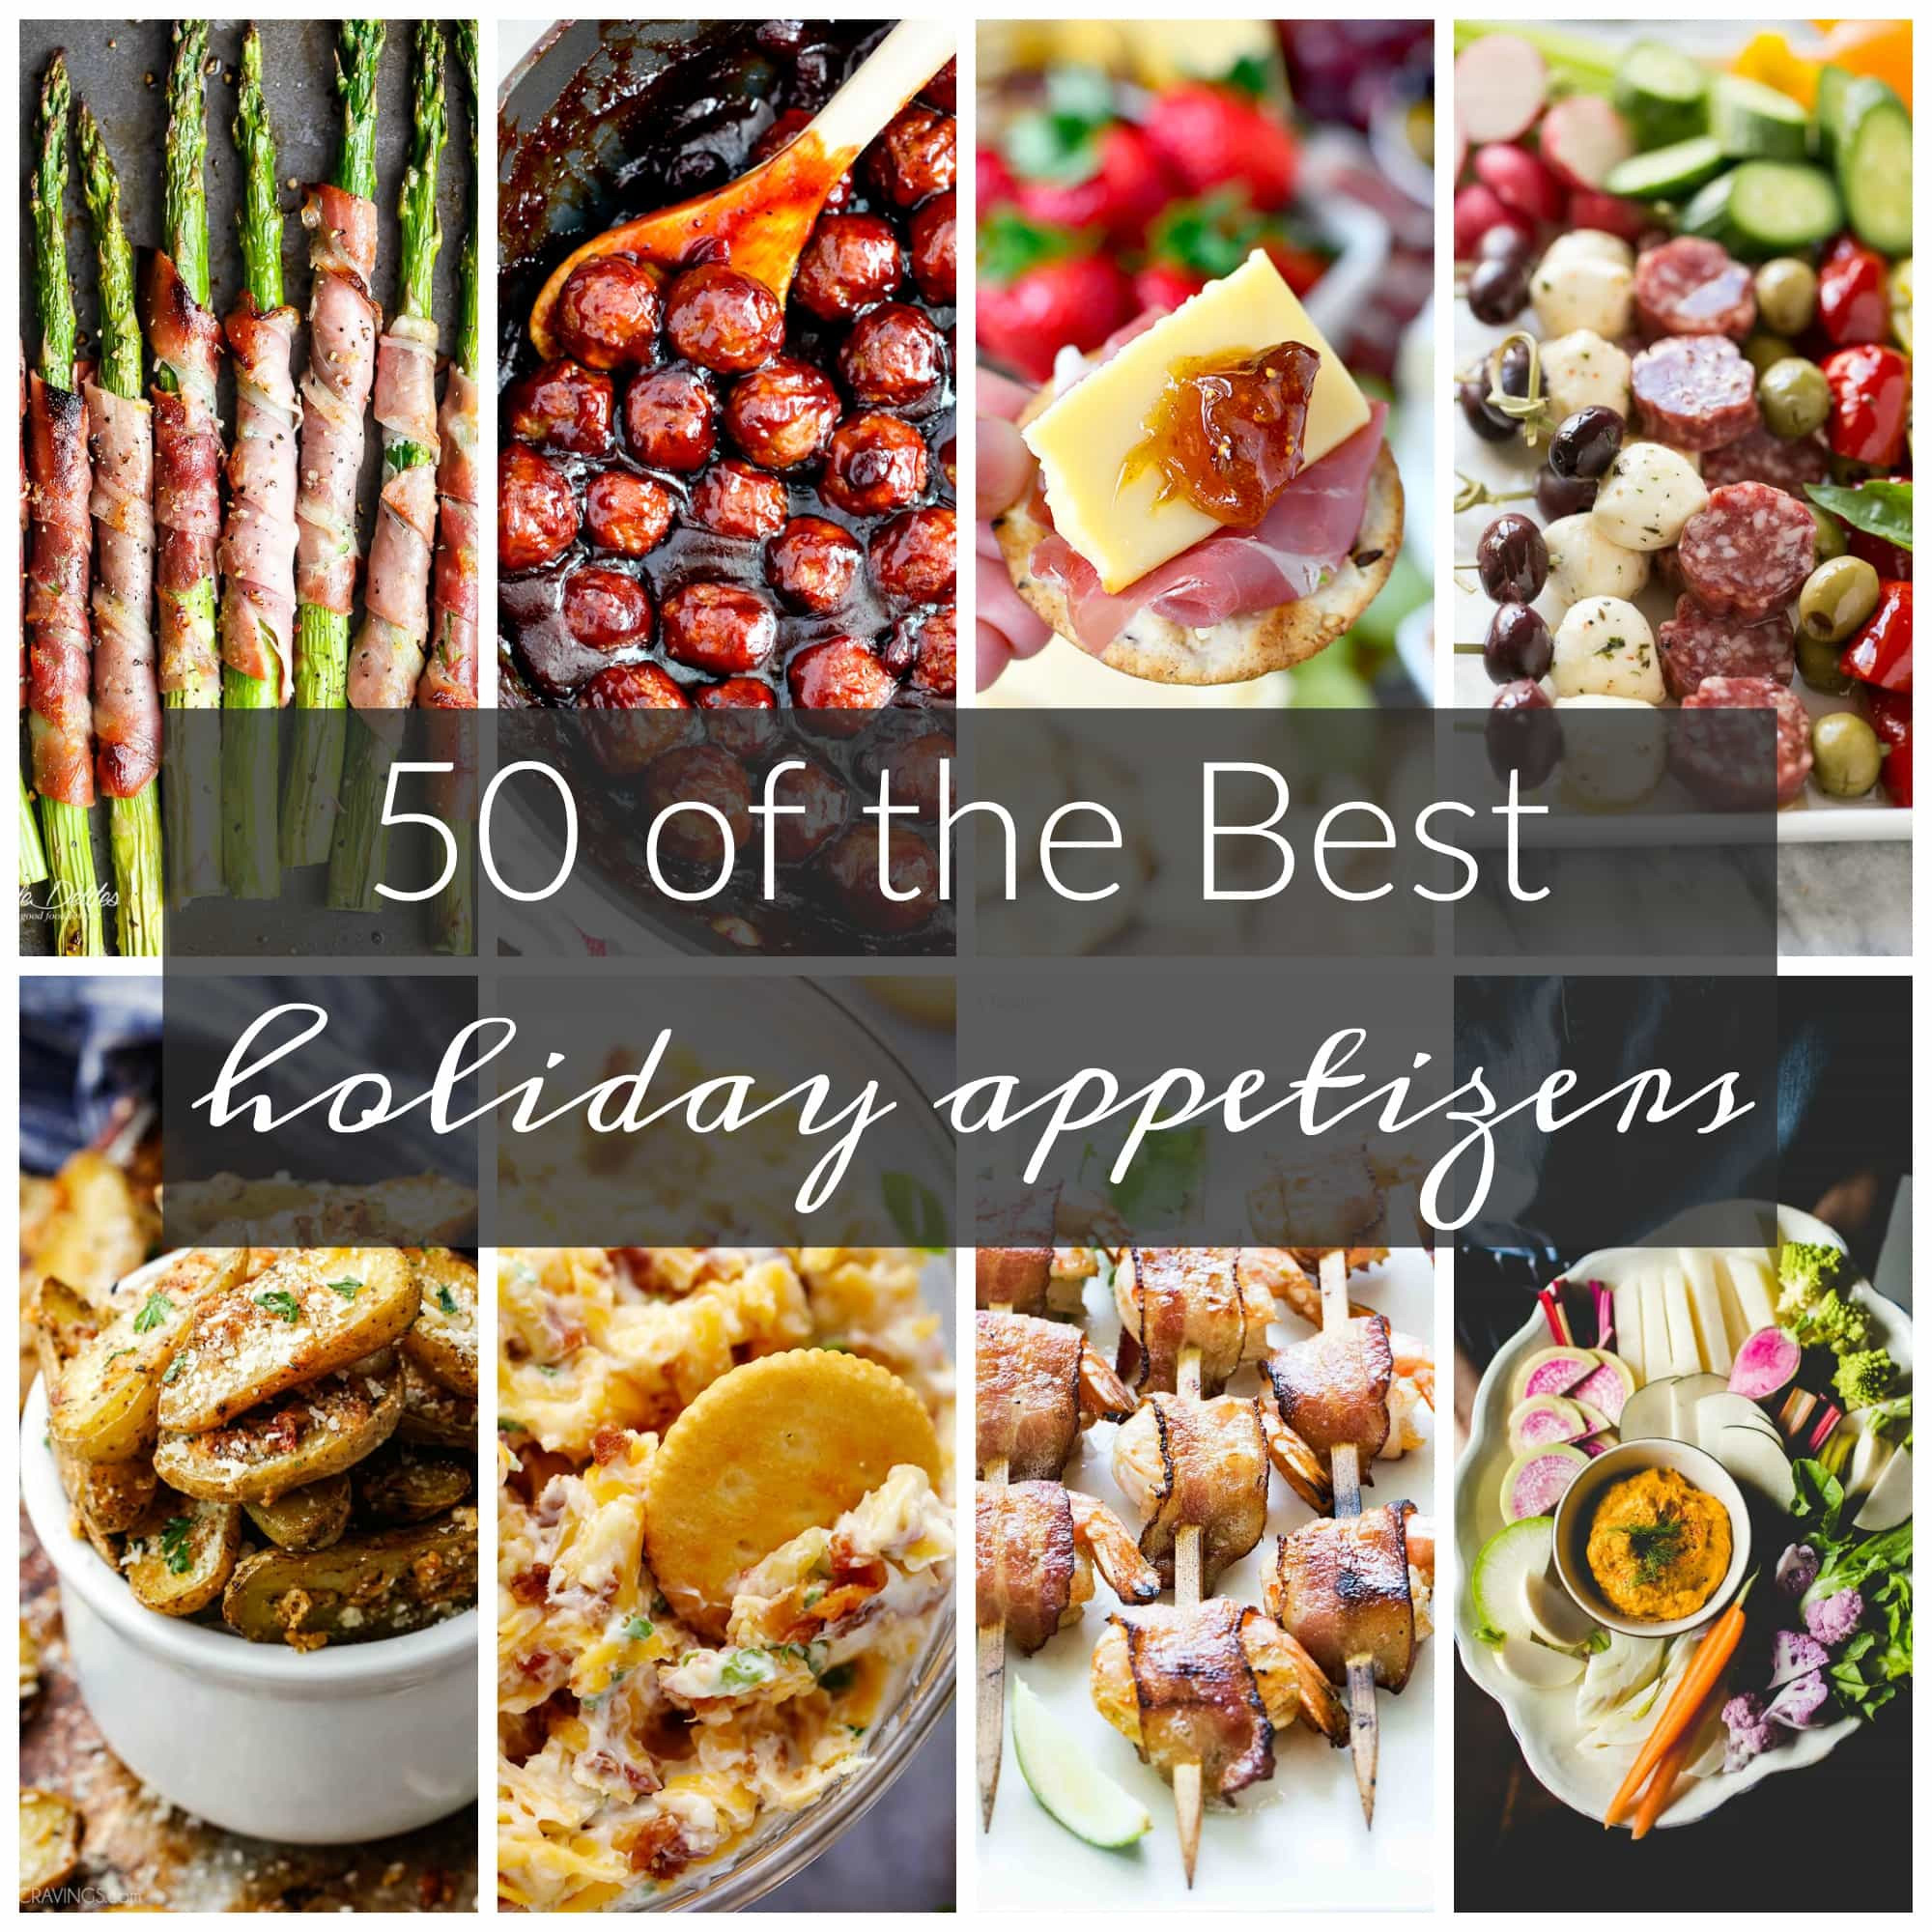 Party Appetizers Christmas  50 of the Best Appetizers for the Holidays A Dash of Sanity